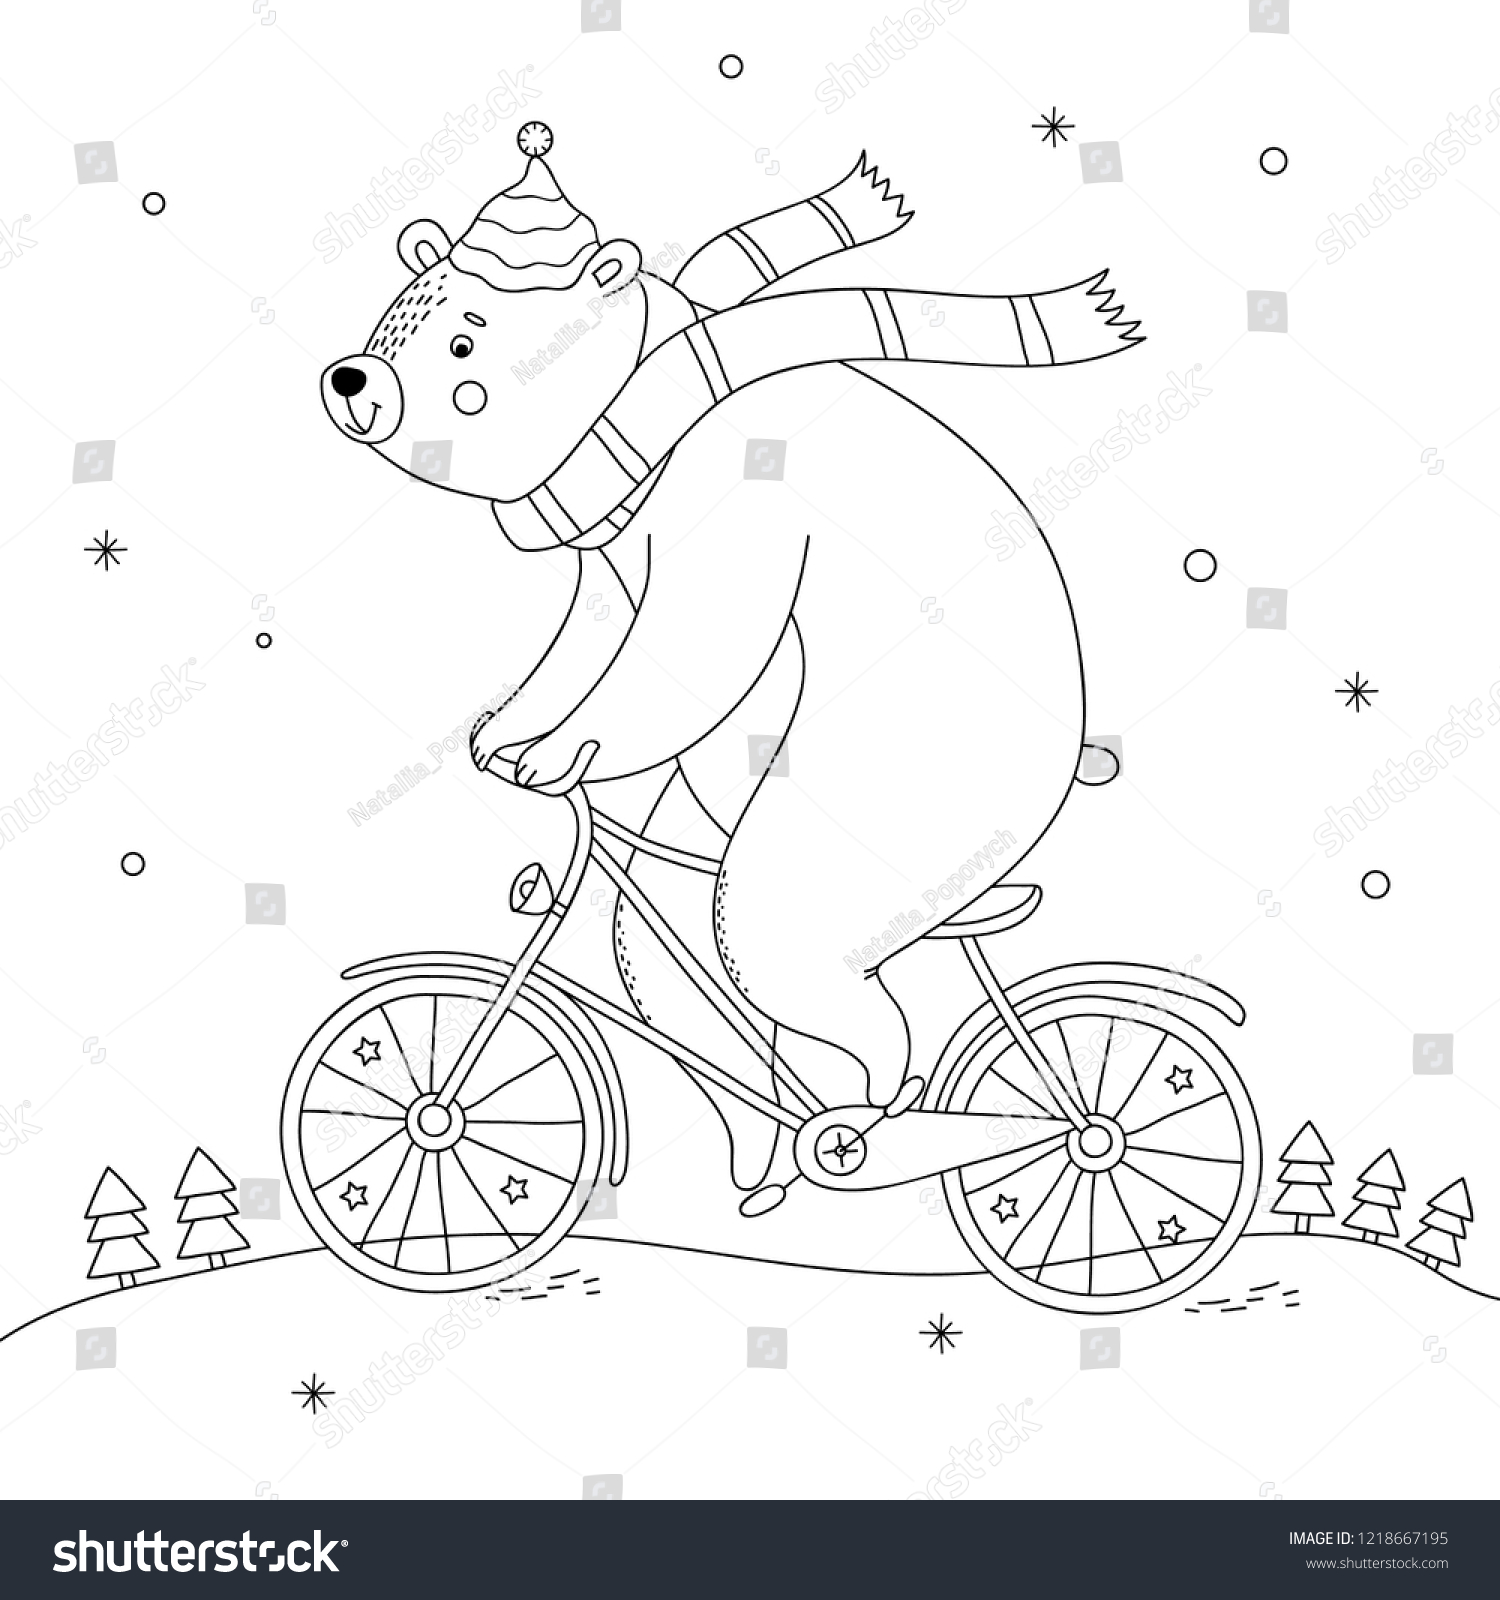 Free Printable Christmas Polar Bear Coloring Page - Get Coloring Pages | 1600x1500